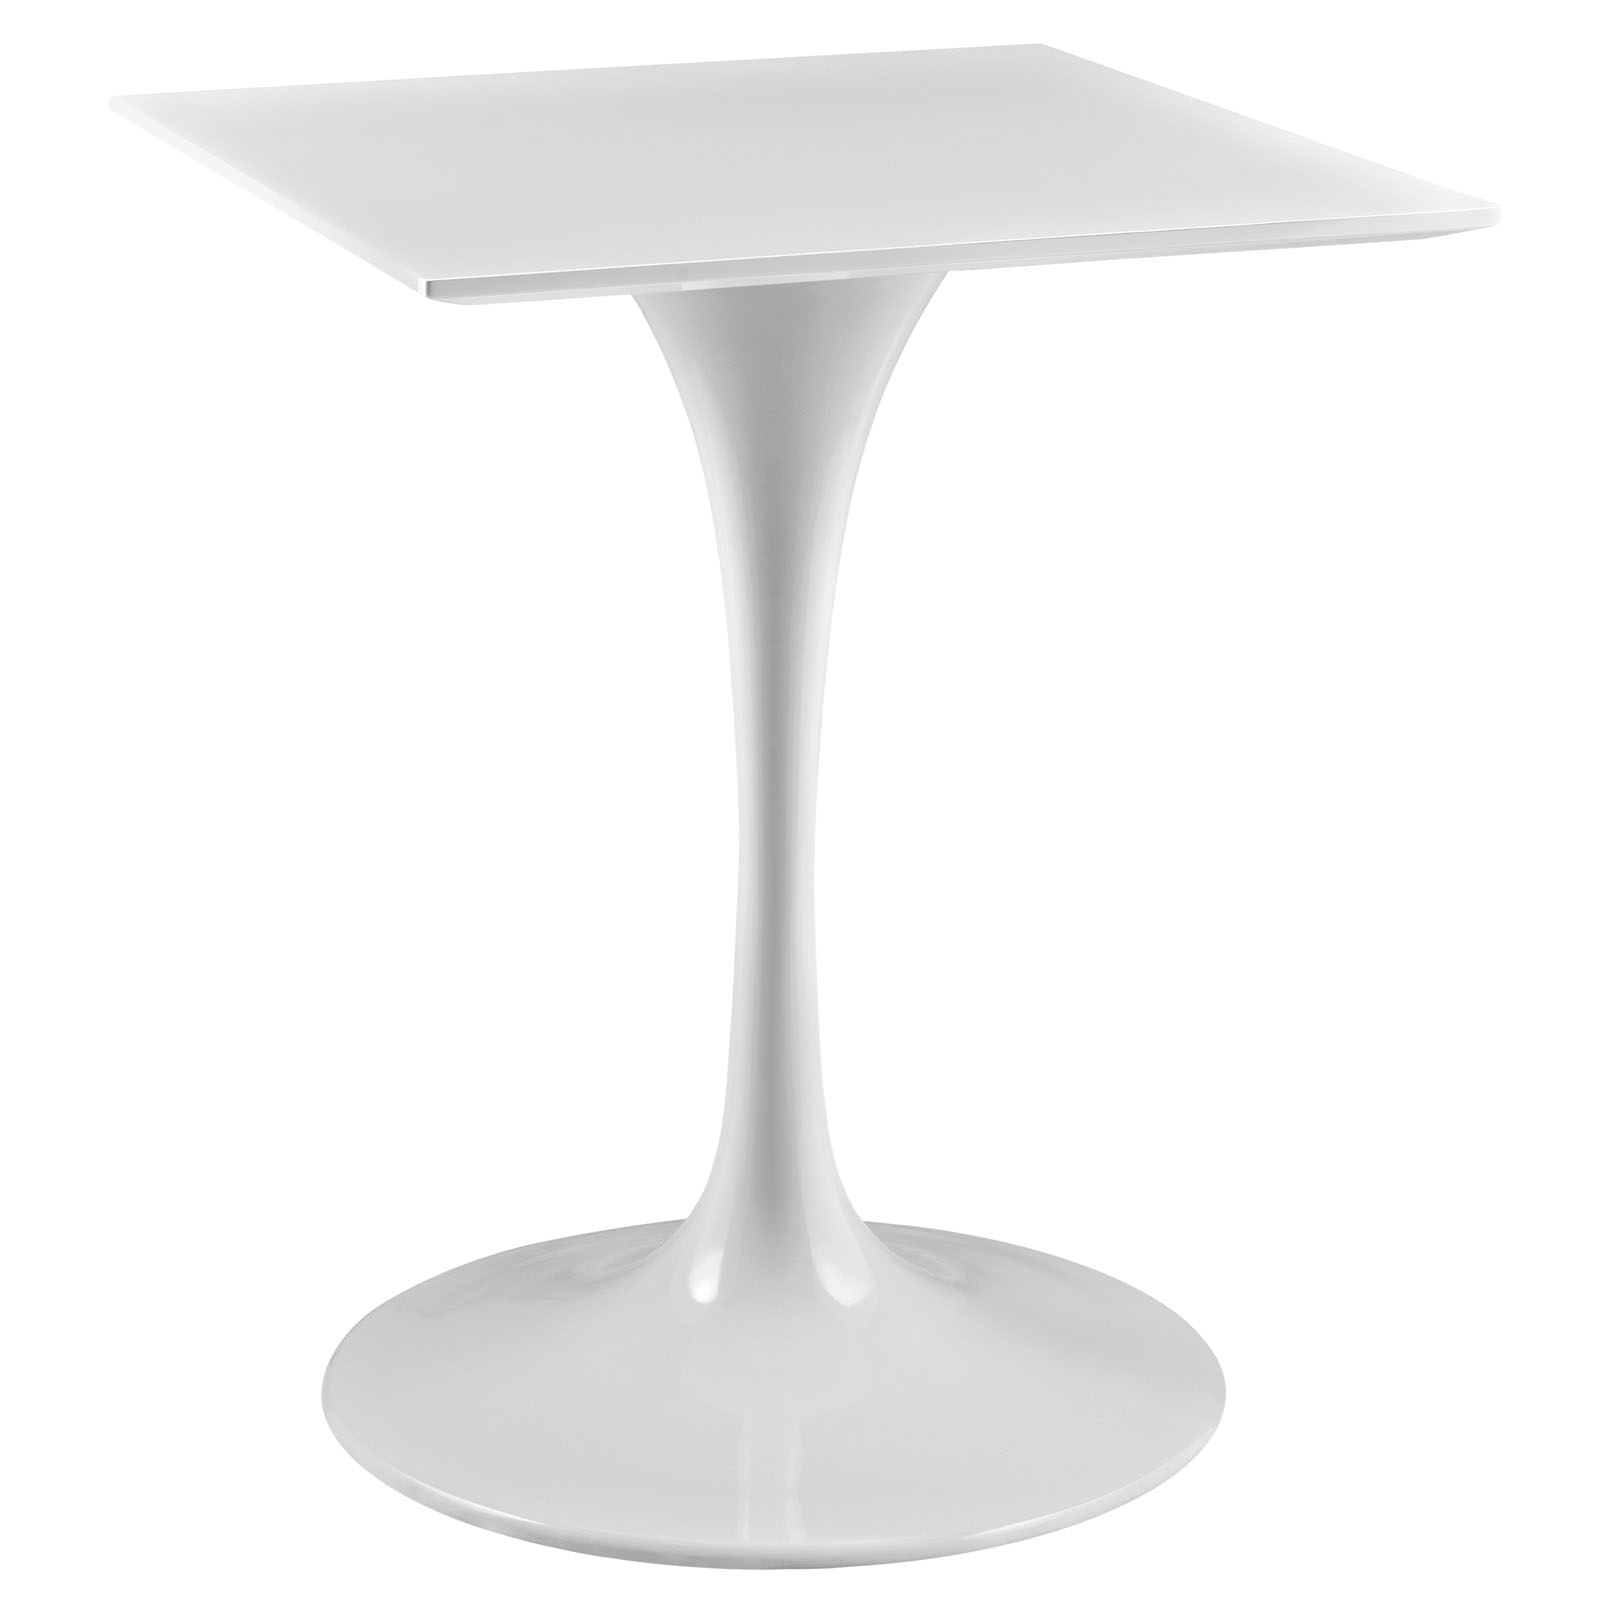 tulip-table-24-.jpg